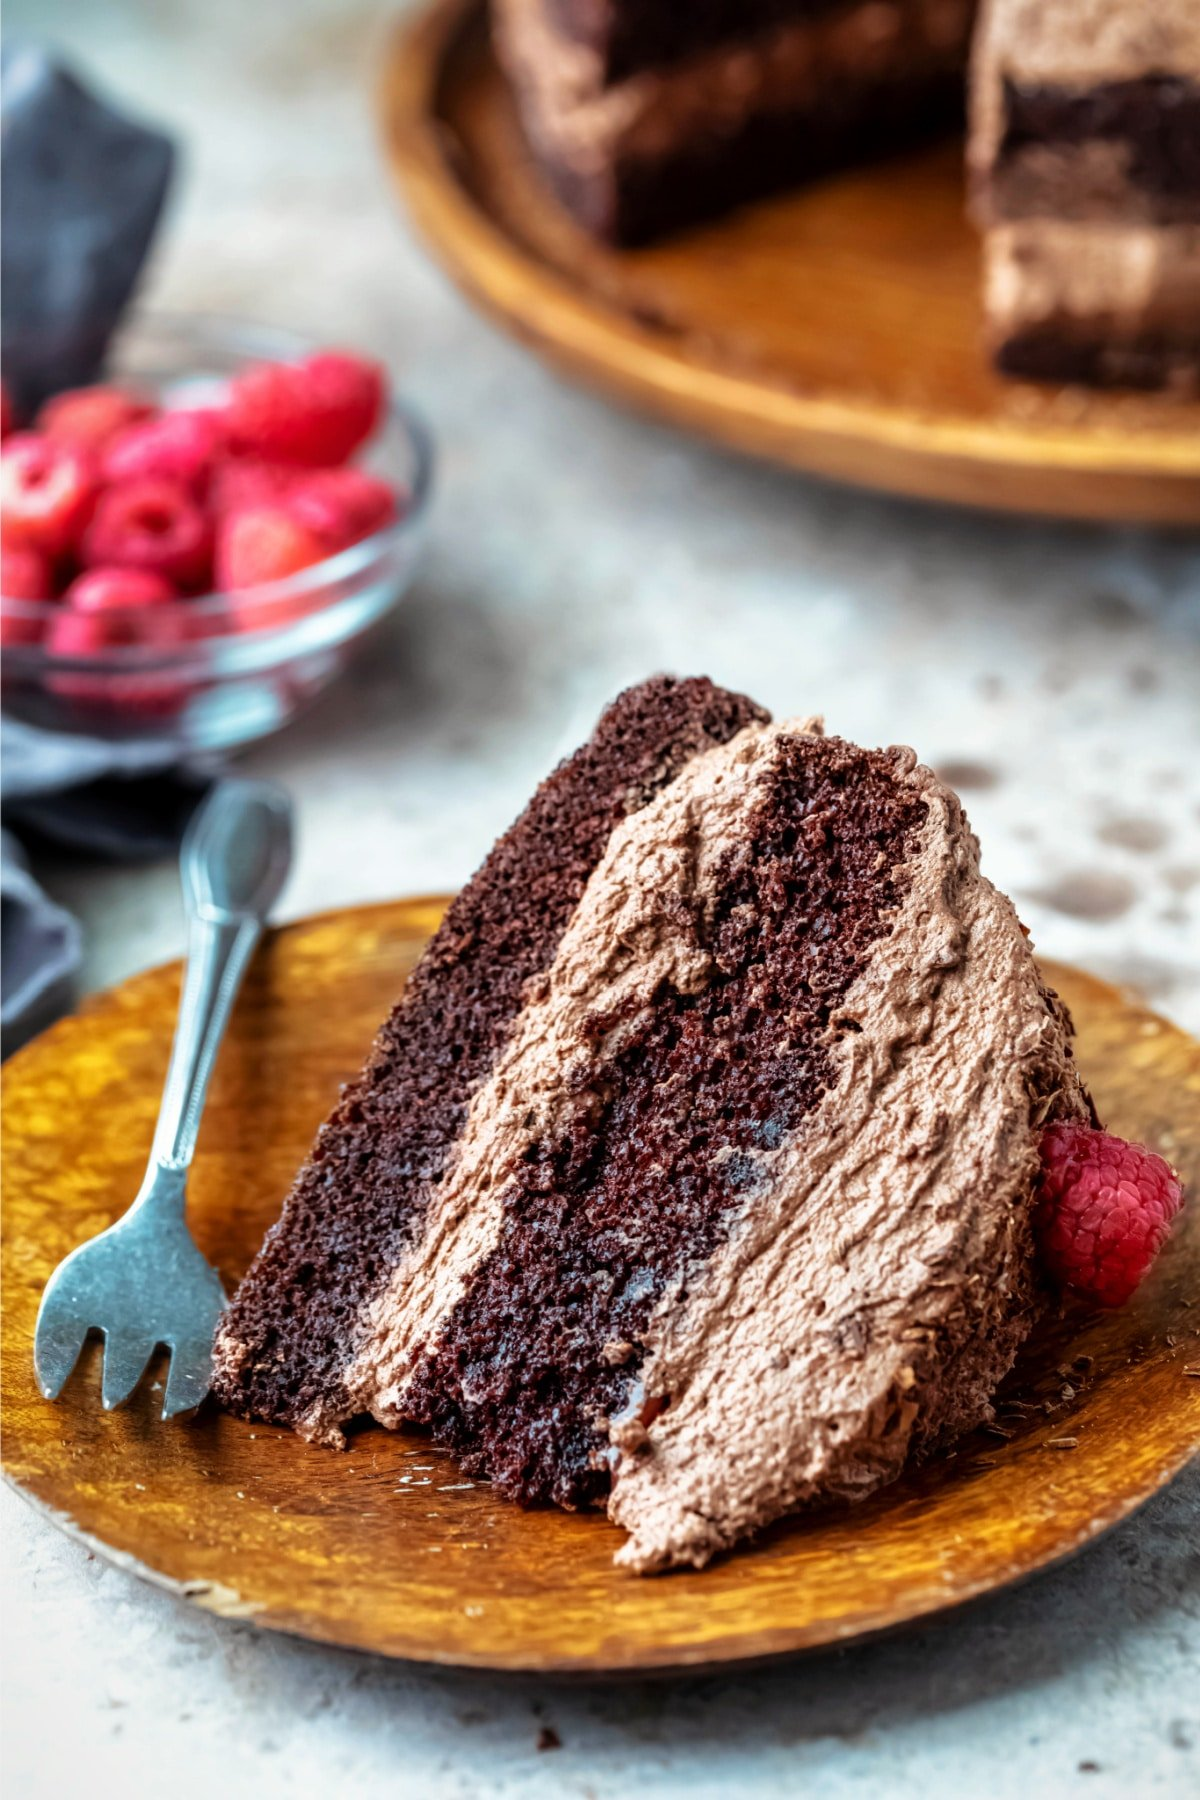 Slice of chocolate brownie cake on a wooden plate